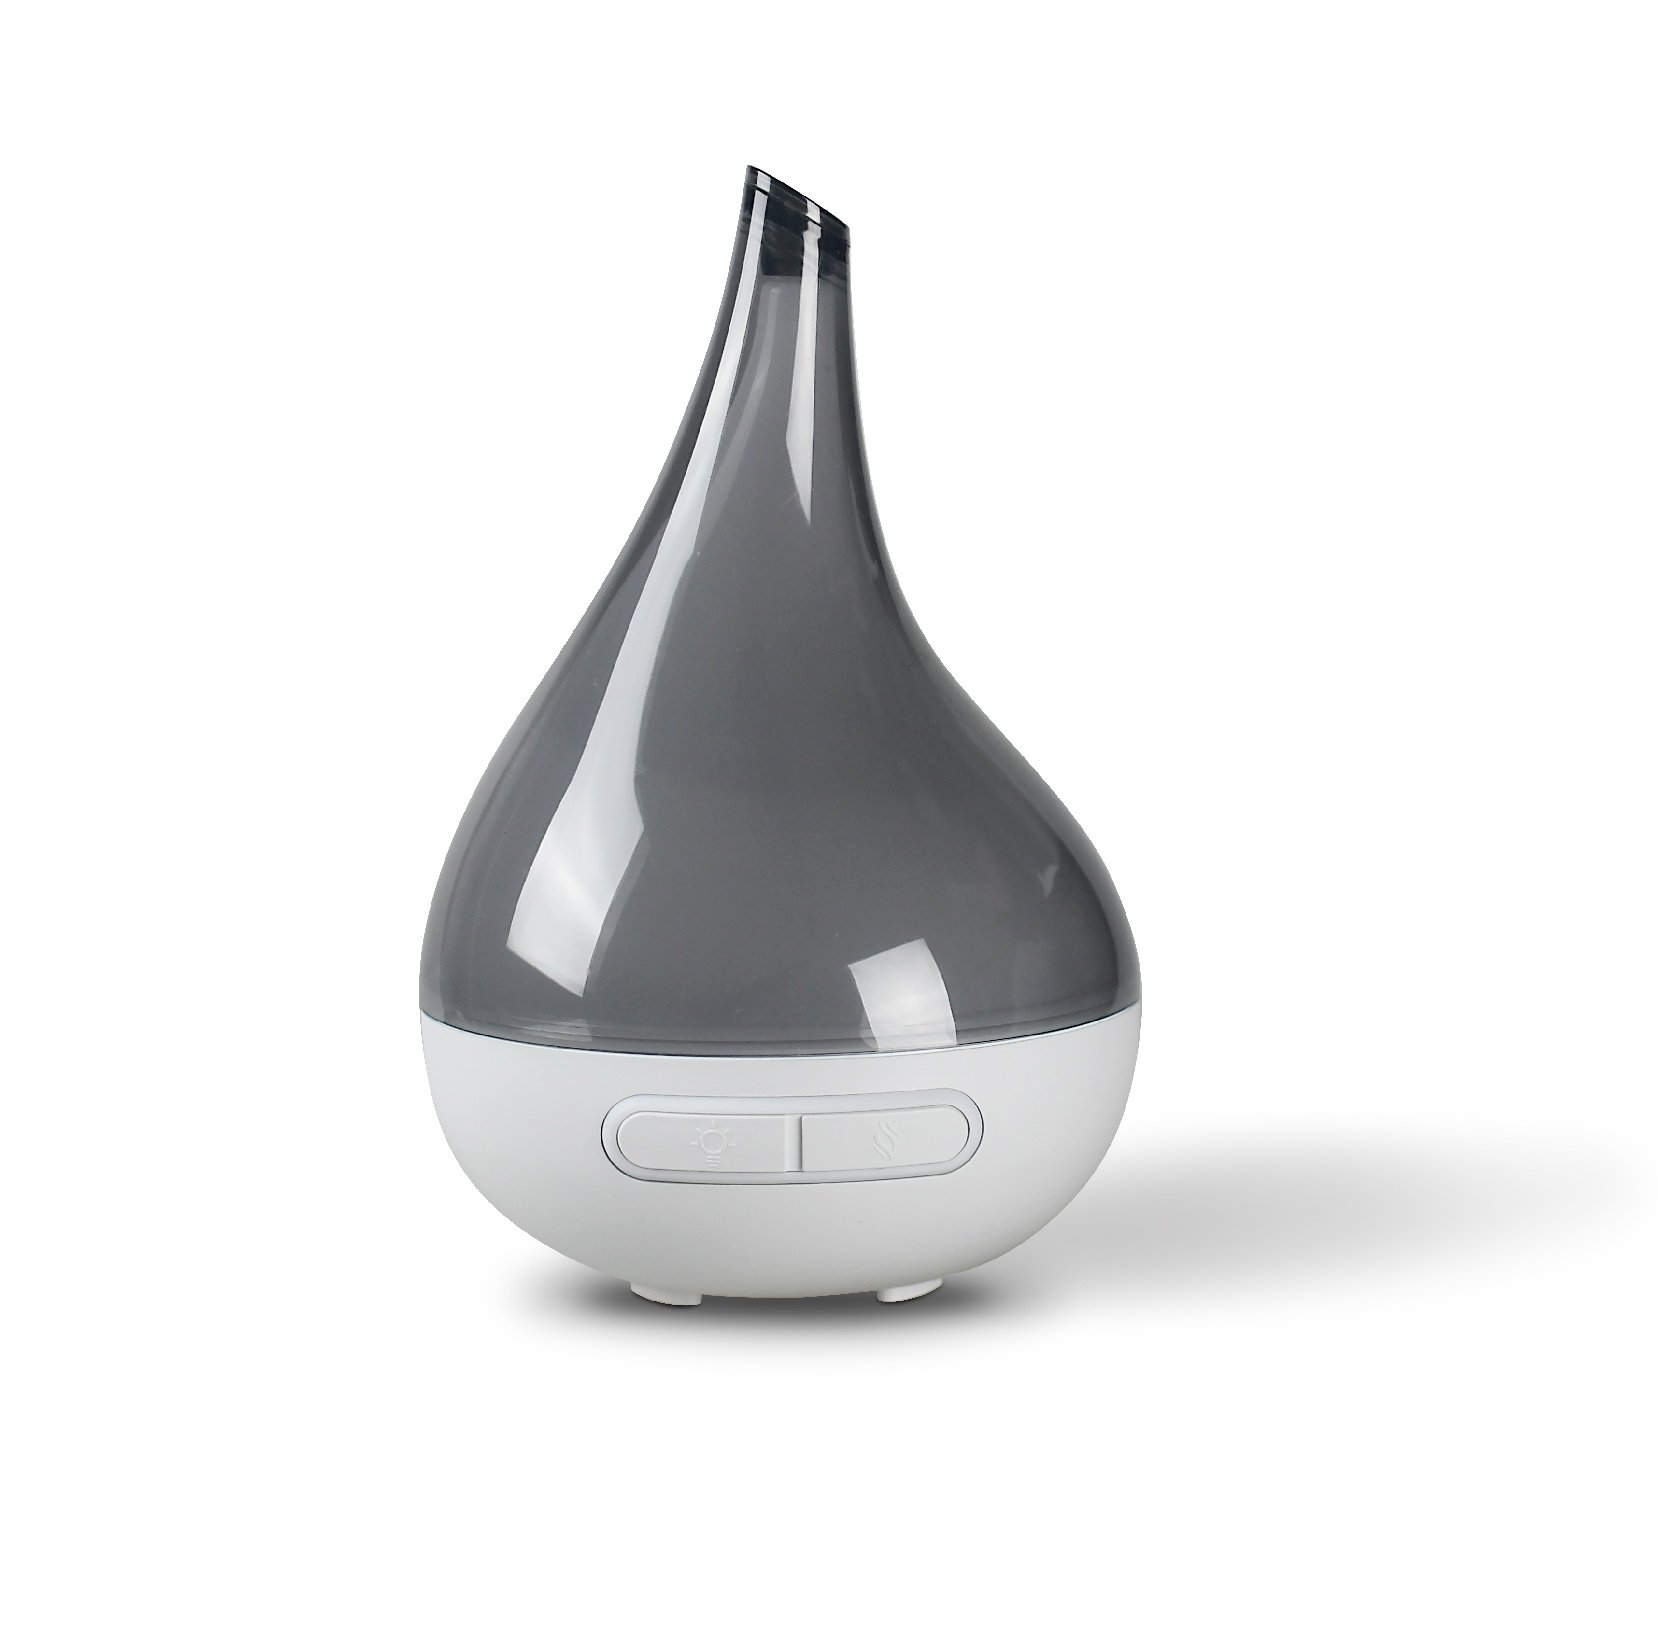 Ultrasonic Aroma Diffuser ~ A review of the top most popular ultrasonic essential